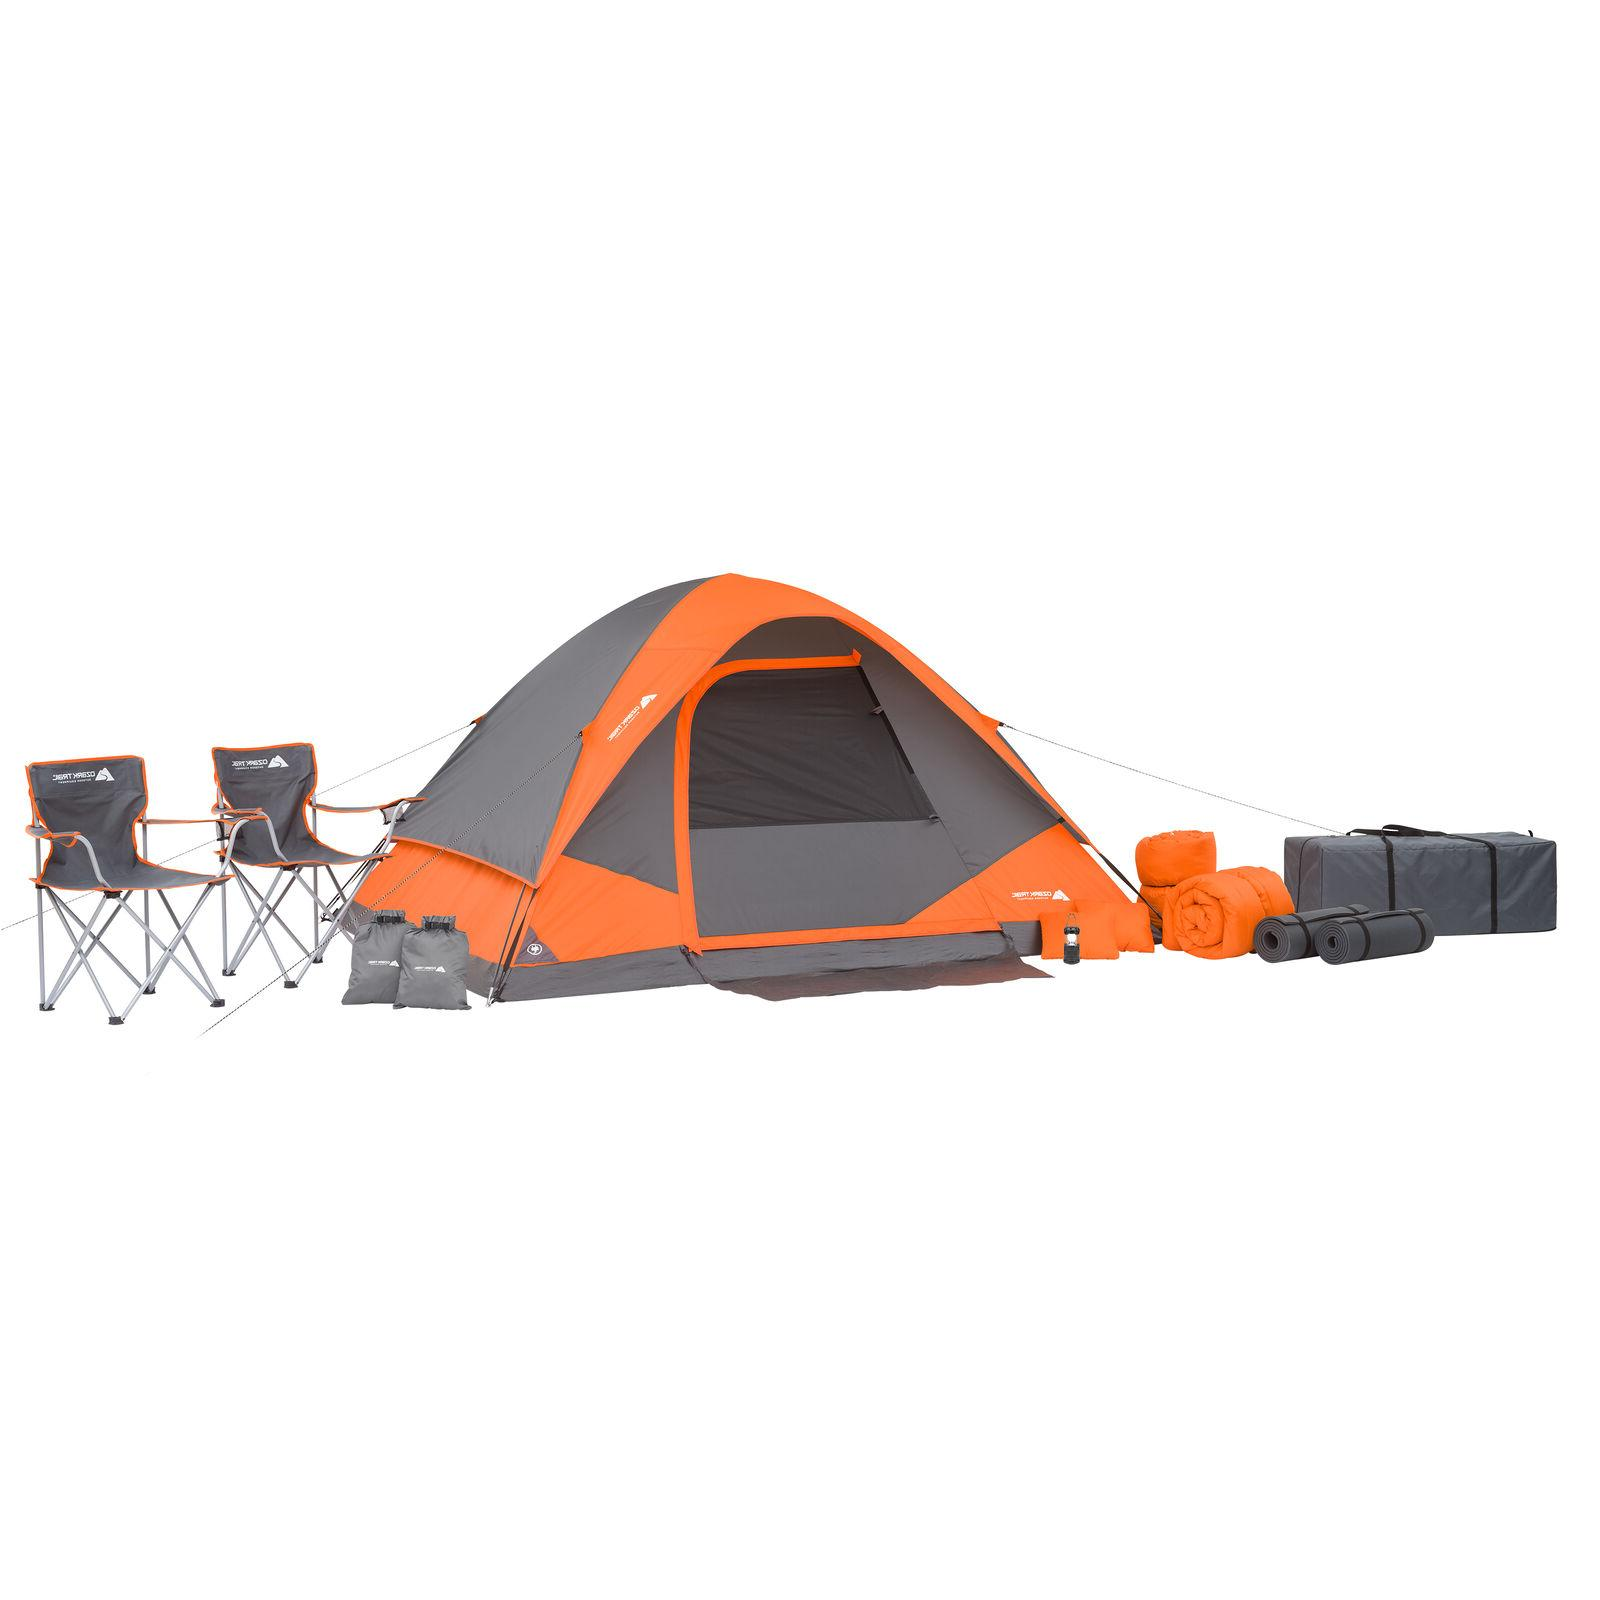 Camping Equipment Family Cabin Set 4 Person Tent Sleeping Ba